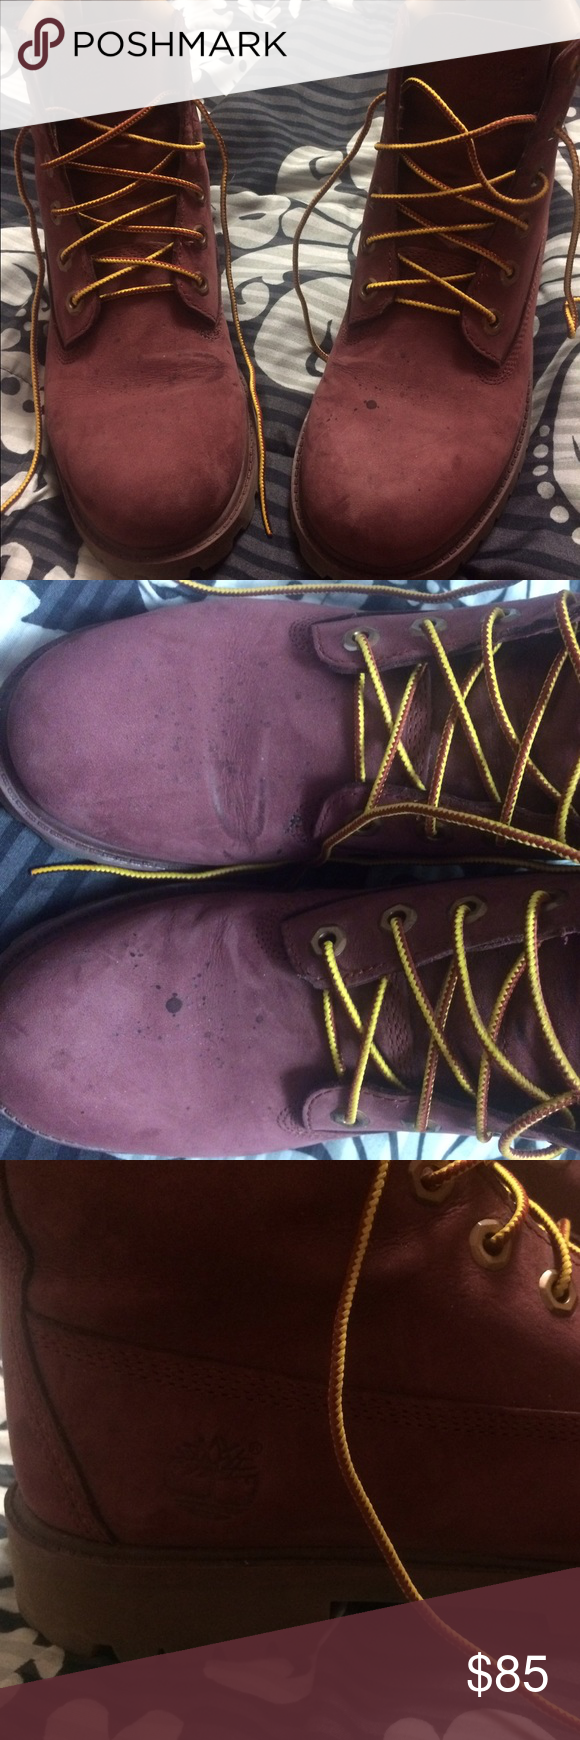 Maroon Timberlands ❤ Maroon/purple Timberlands that I bought in the fall. They have some water stain spots and stretch marks on the front as seen before but I think they can be taken to be cleaned professionally. They are still pretty new and a nice rare color. Boys size 6 which is a woman's size 8 They were very expensive and I love them but I need the money. No Trades but offers and bundles are welcome. 😊 Timberland Shoes Winter & Rain Boots